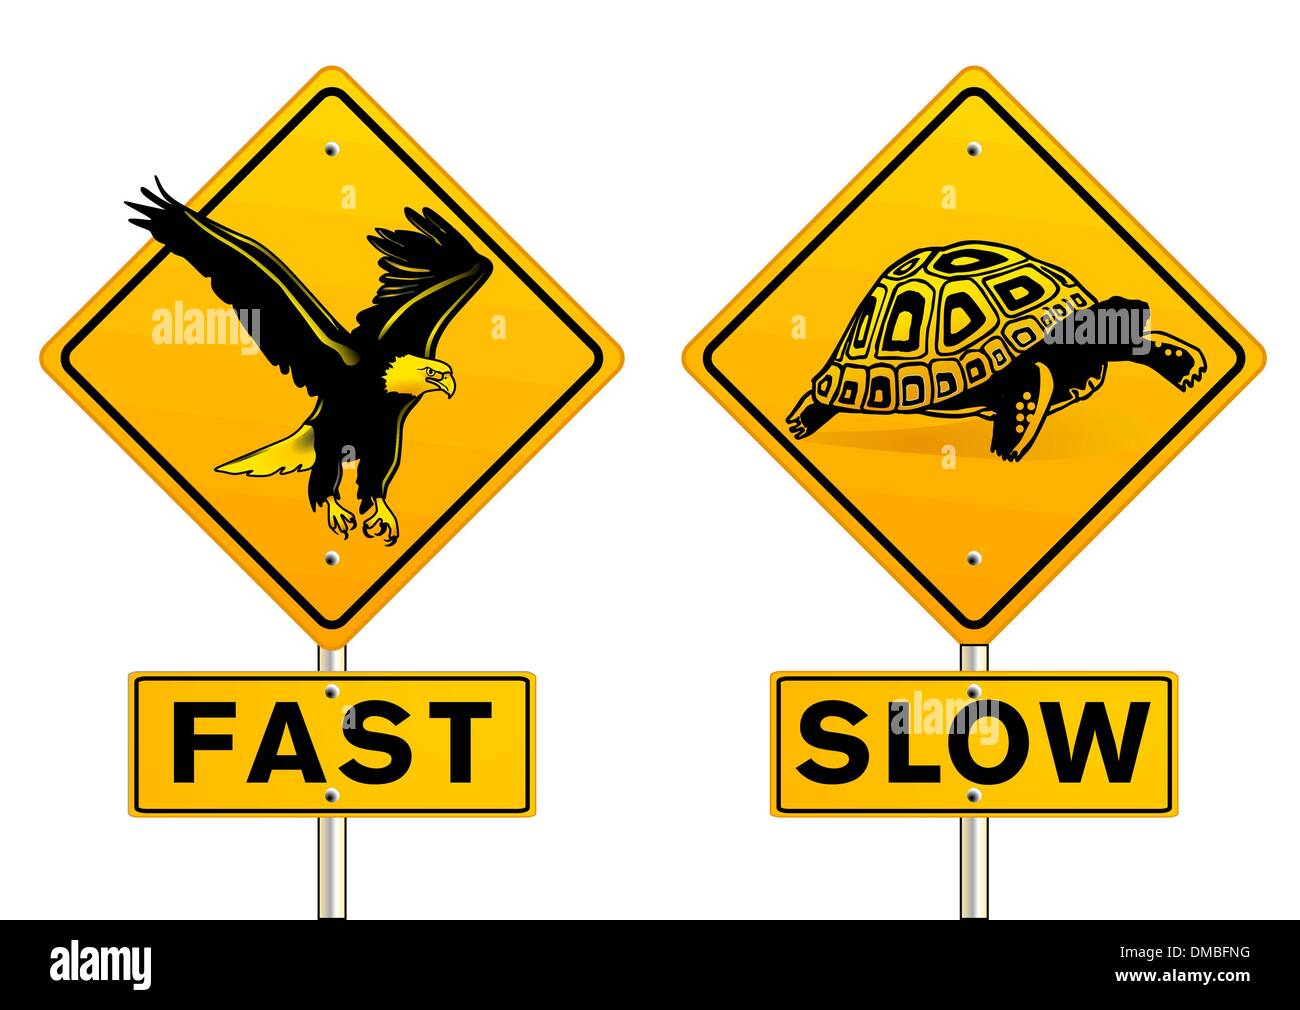 fast and slow sign - Stock Image